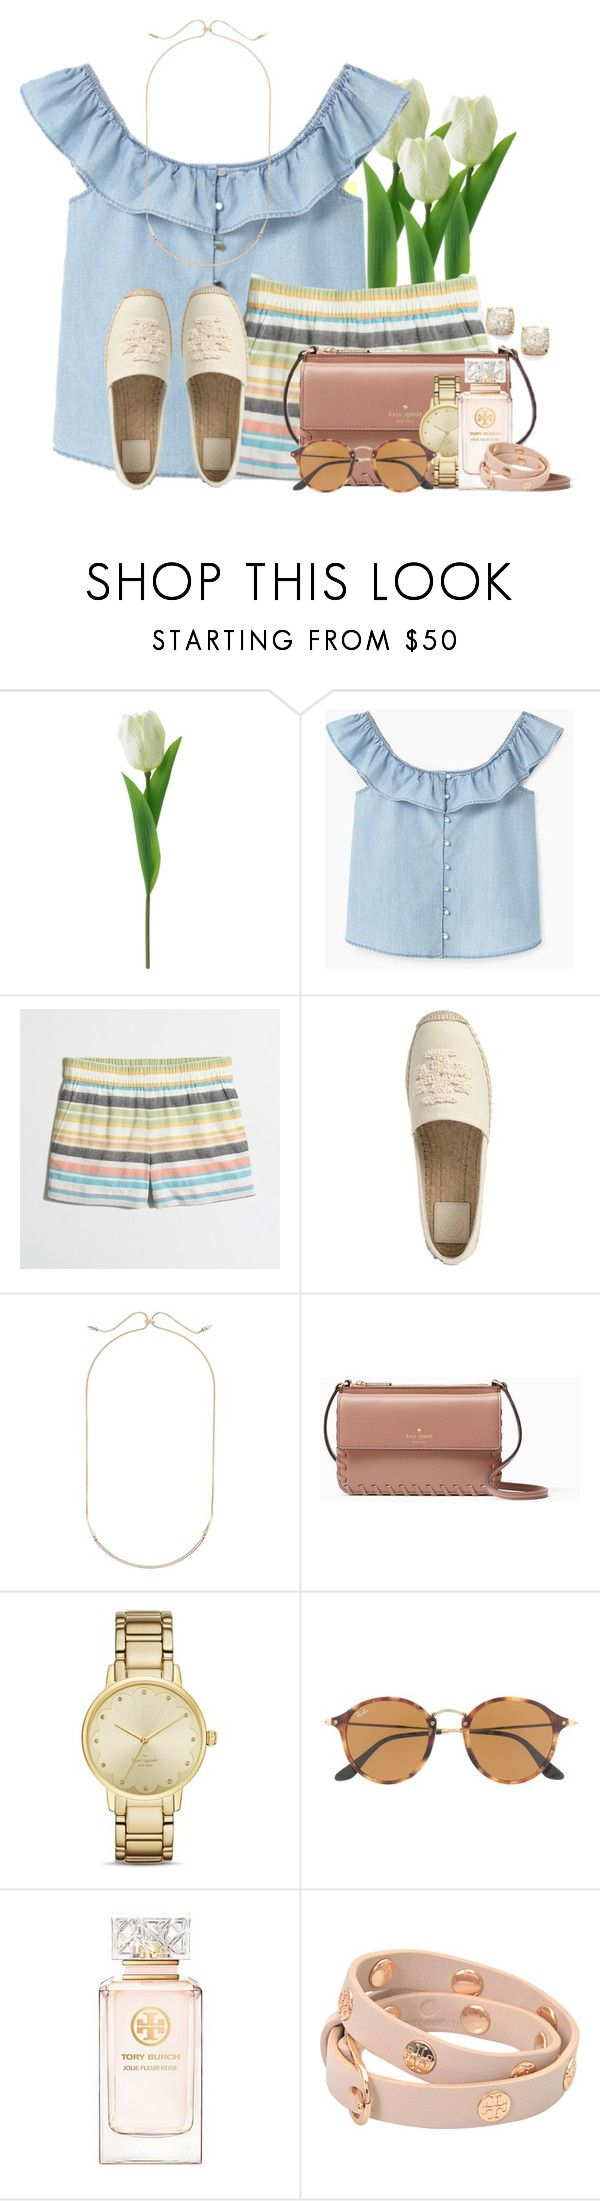 """Puppy store pics in items💗💗"" by flroasburn ❤ liked on Polyvore featuring MANGO, J.Crew, Tory Burch, Kendra Scott, Kate Spade and Ray-Ban"